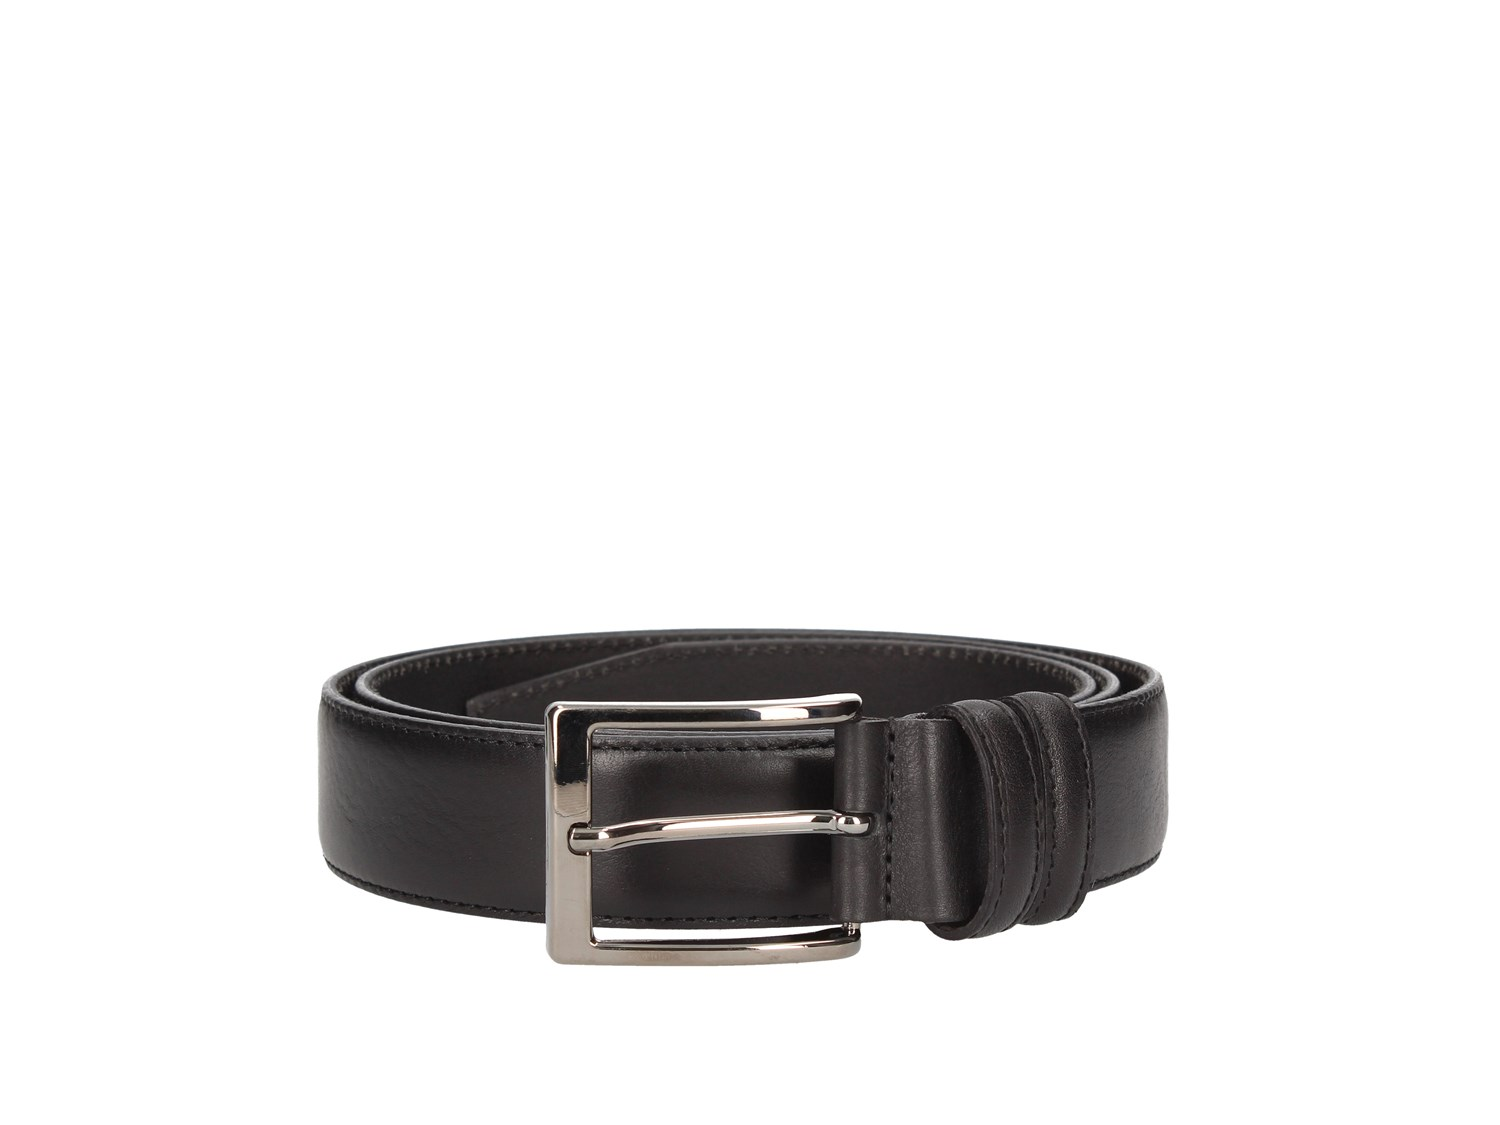 Reporters Esp-08 Black Accessories Man Belt